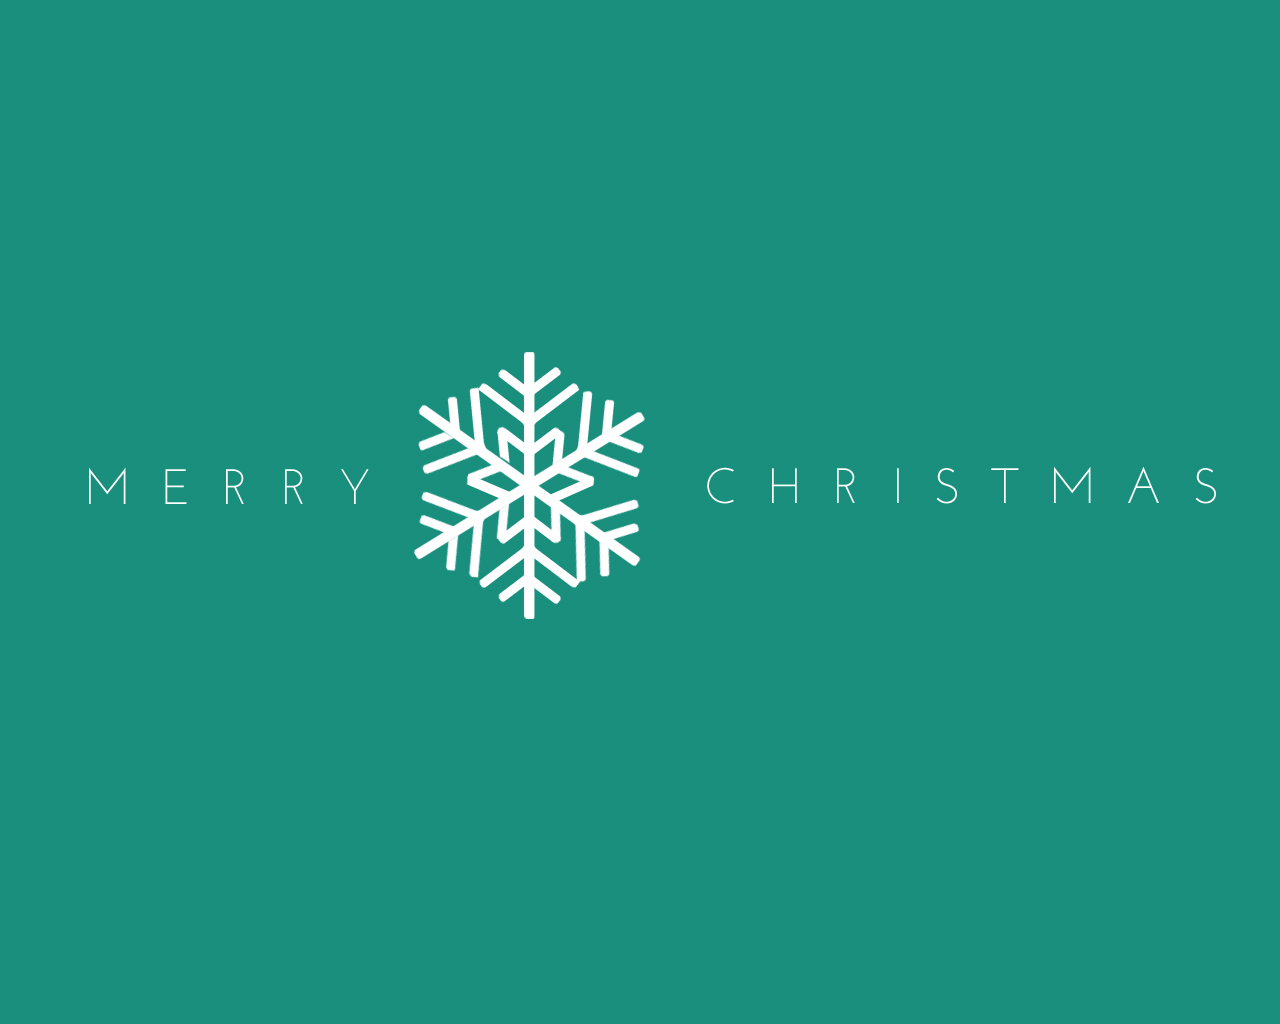 If Your Laptop Could Add Some Sprucing Up And A Bit Of Festivity Try Out These Simple Merry Christmas Wallpapers They Were Super Fun To Make